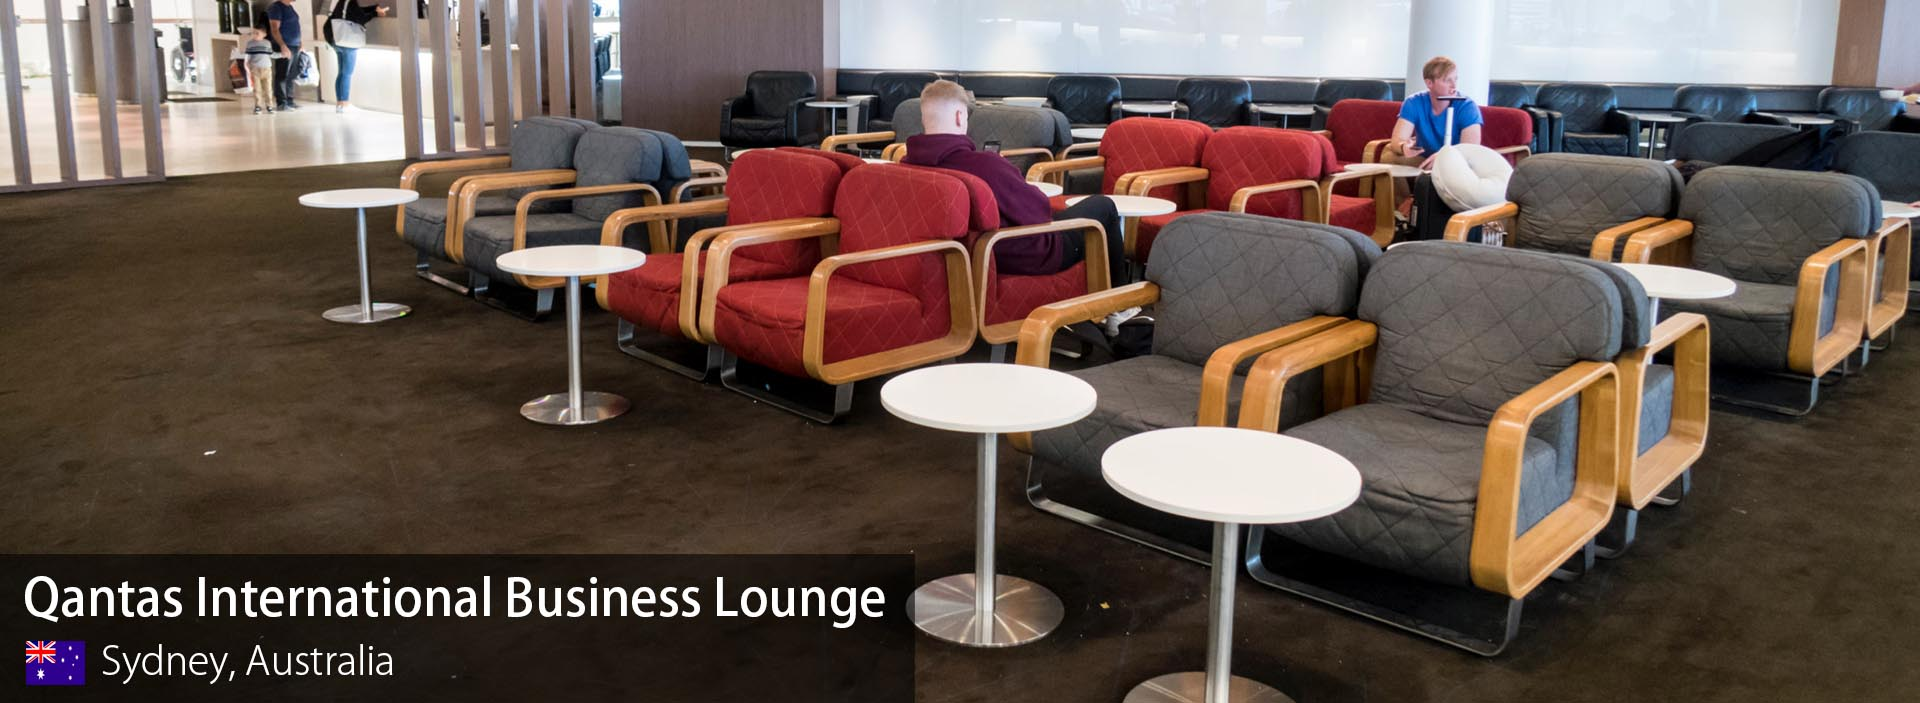 Lounge Sydney Review Qantas Business Class Lounge At Sydney Kingsford Smith